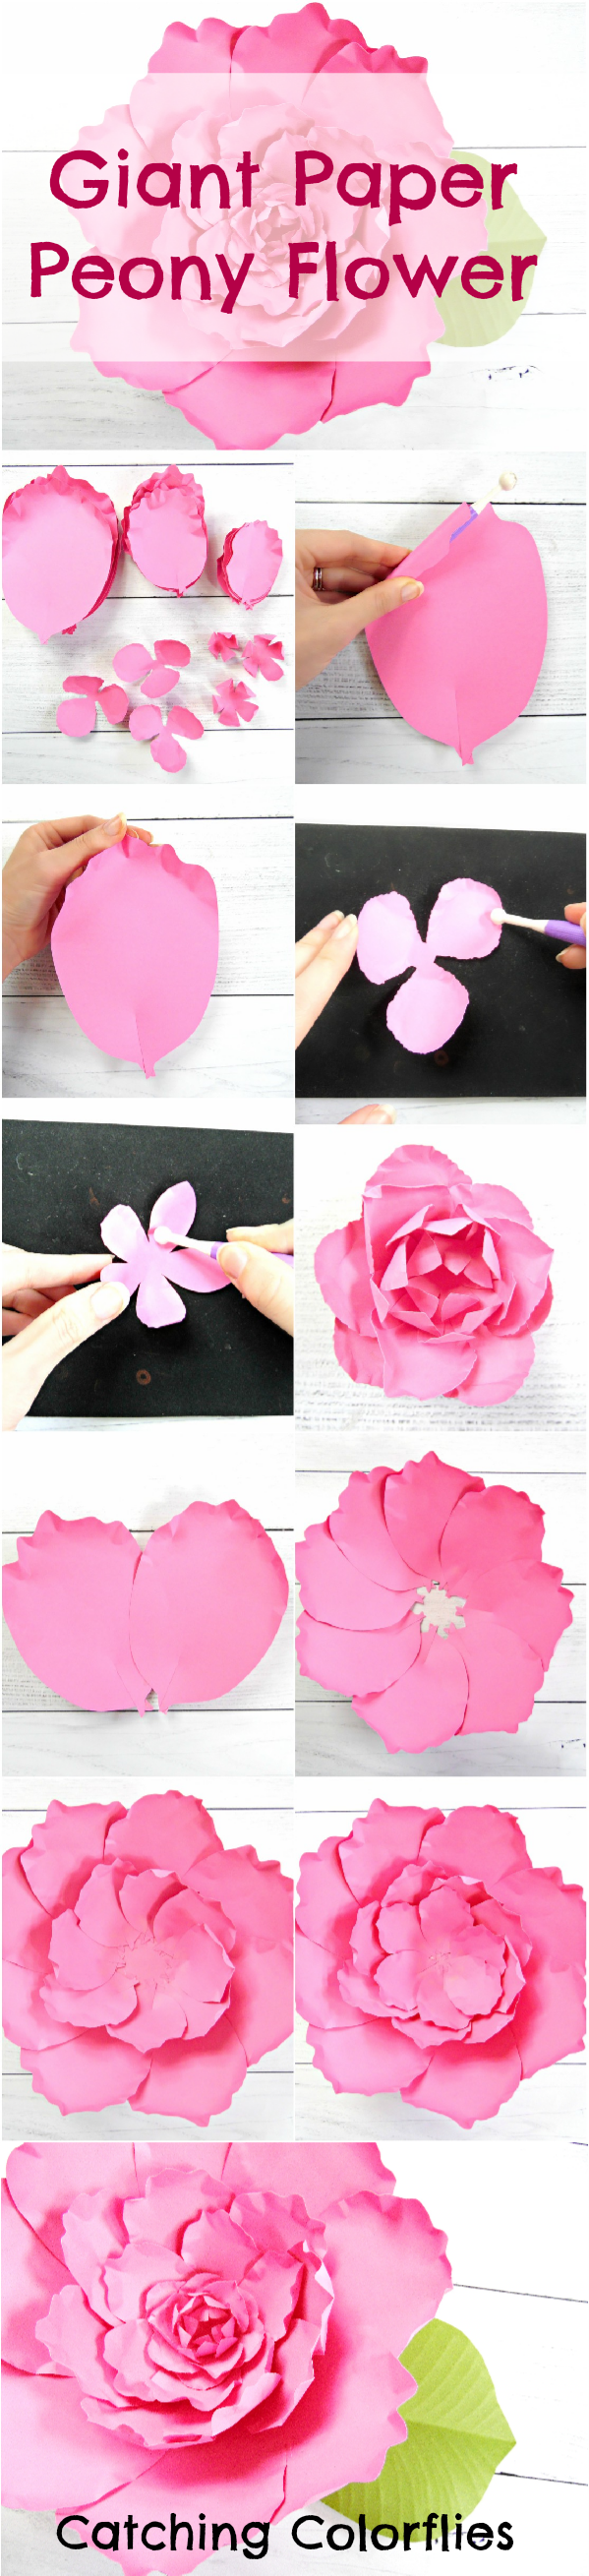 Giant peony paper flower tutorial catching colorlfies giant paper peony flower tutorial diy paper flowers printable peony flower templates mightylinksfo